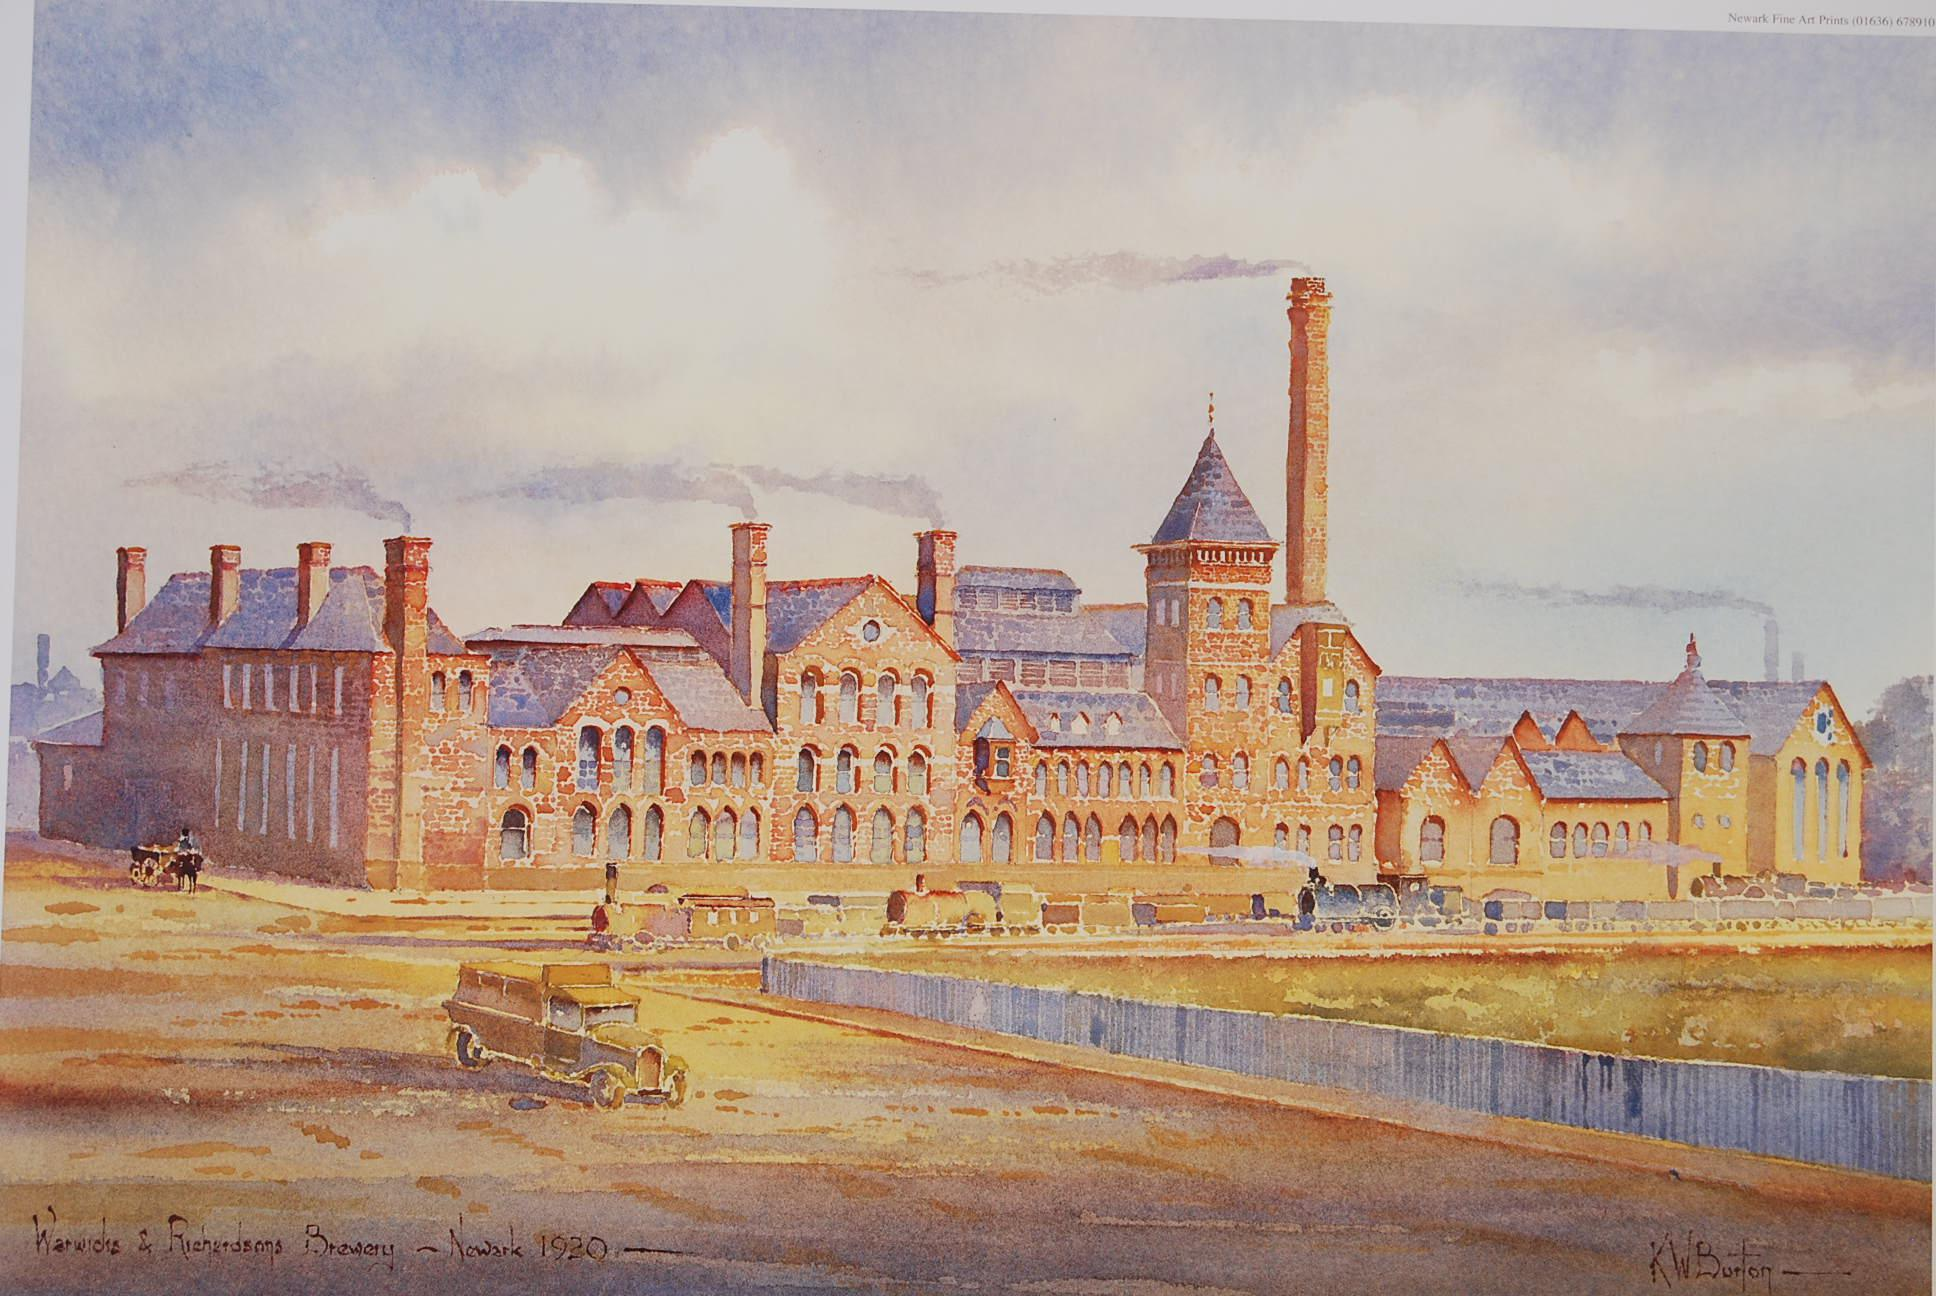 Warwick and Richardson Brewery Newark by KW Burton